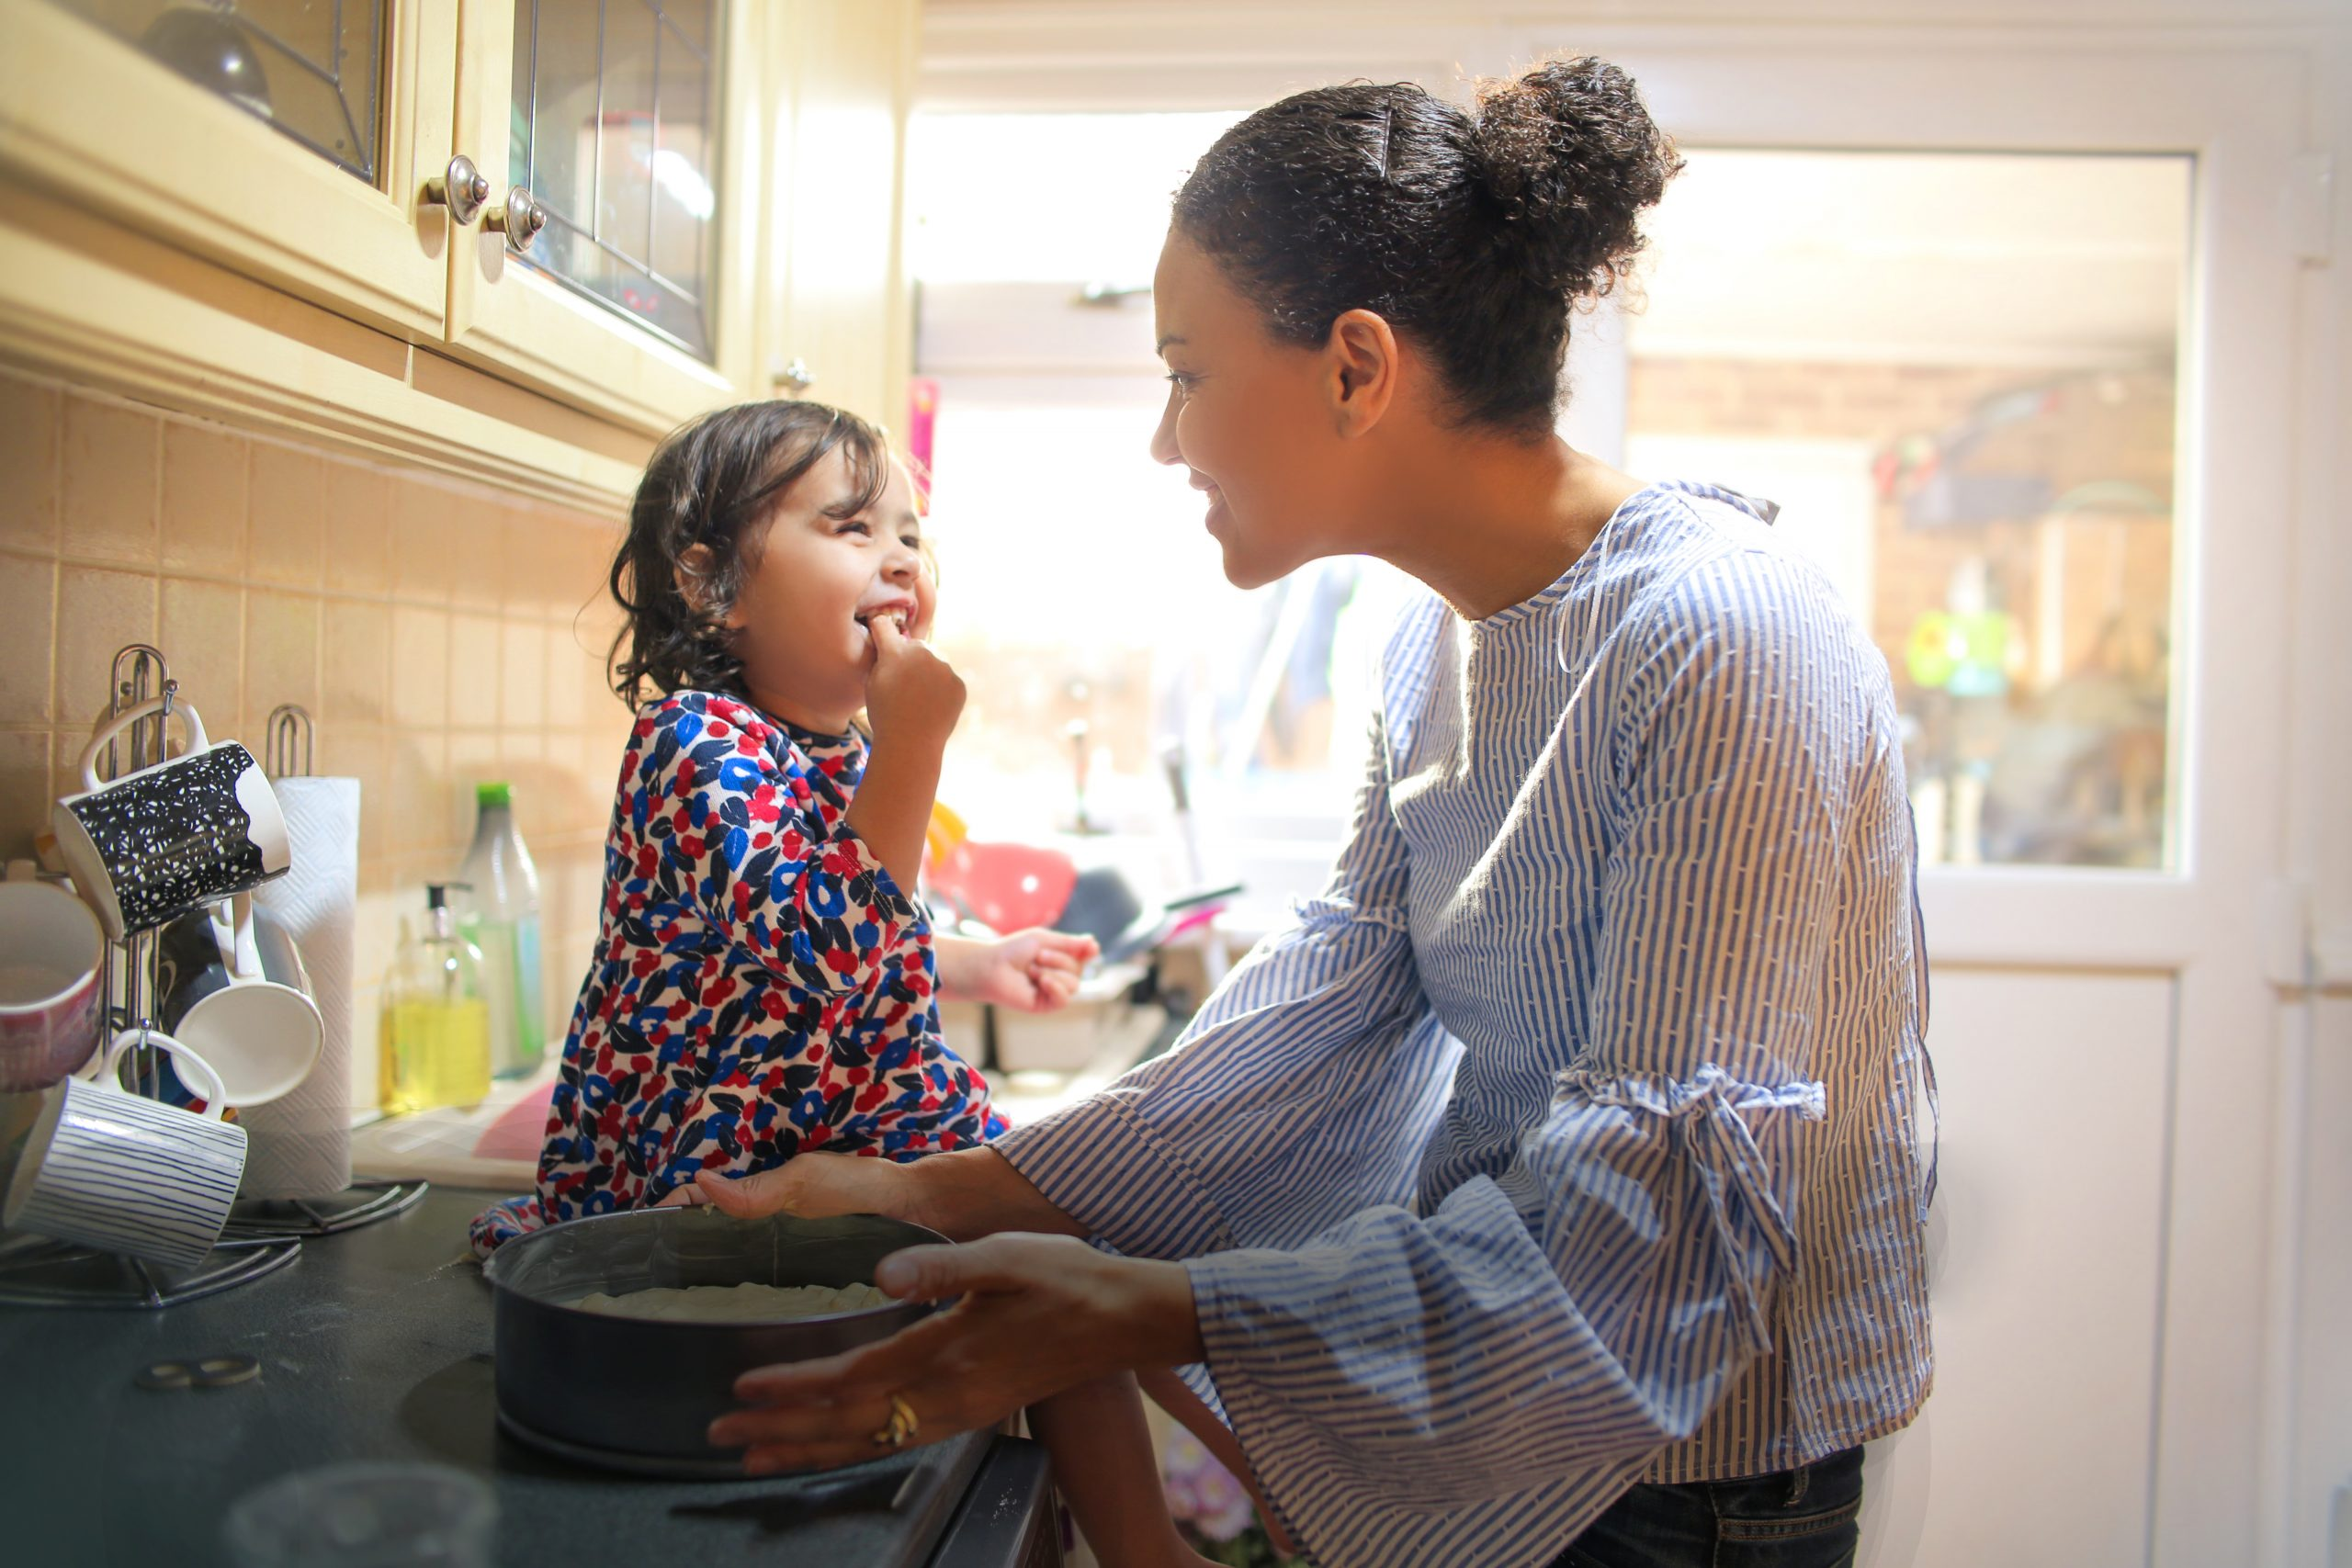 Intolérance alimentaire ou allergie alimentaire